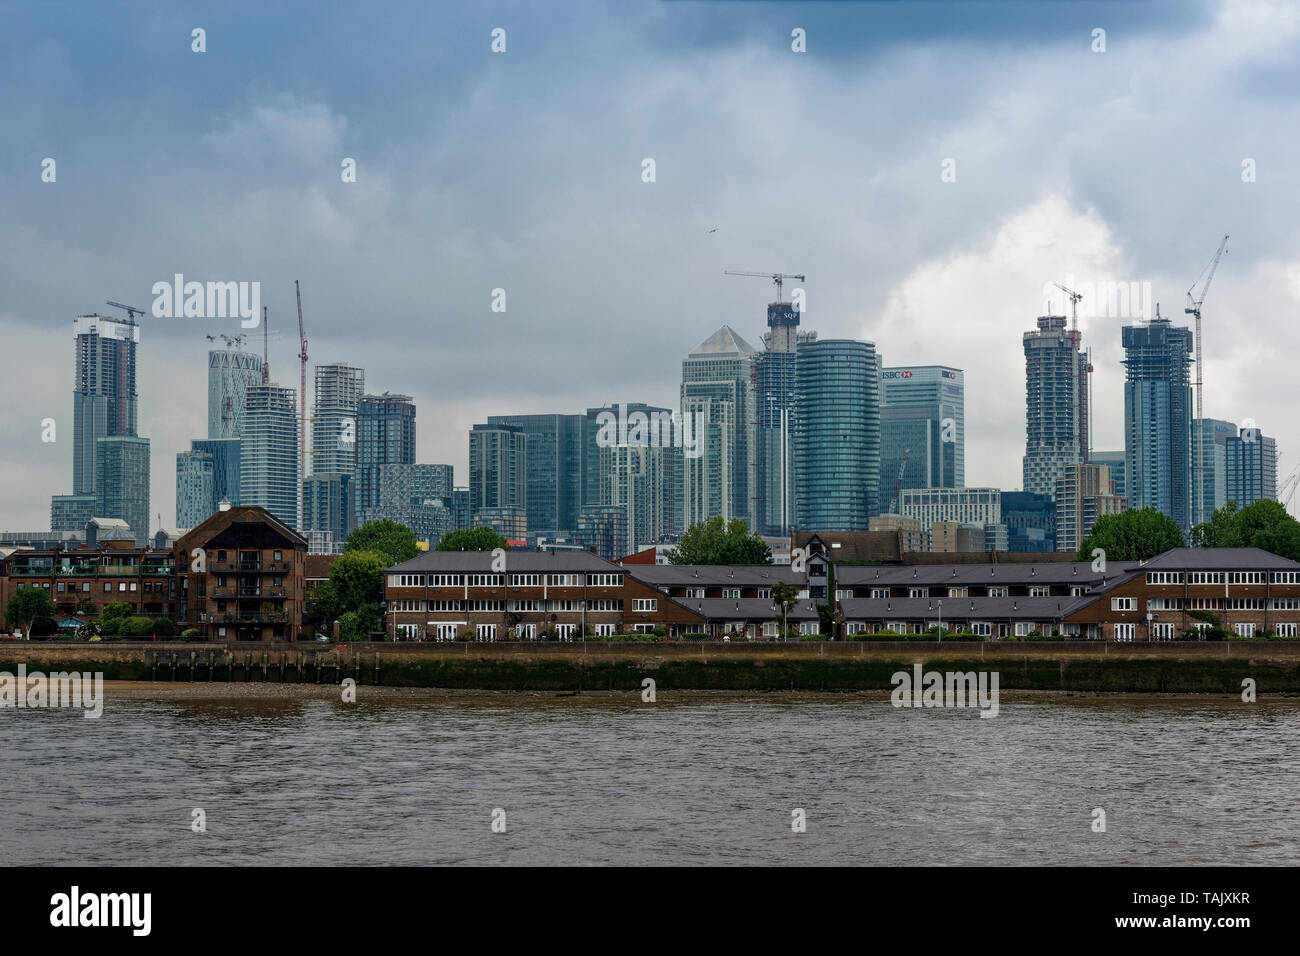 LONDON ISLE OF DOGS SKYSCRAPERS OF CANARY WHARF LOOM OVER THE RIVER THAMES - Stock Image